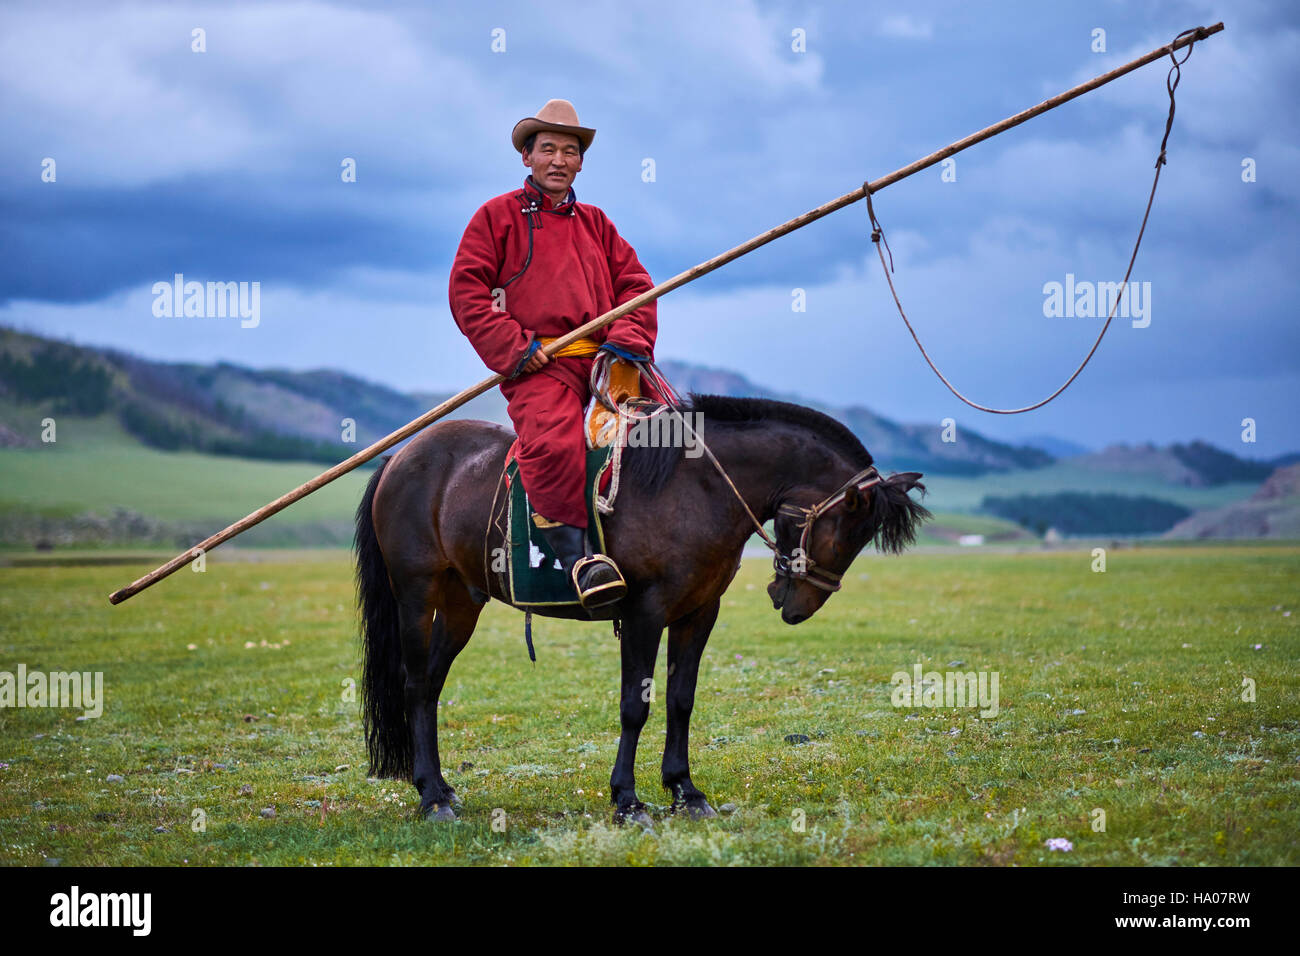 Mongolia, Ovorkhangai province, Orkhon valley, Nomad camp, Mongolian horserider with his urga to catch the horses - Stock Image